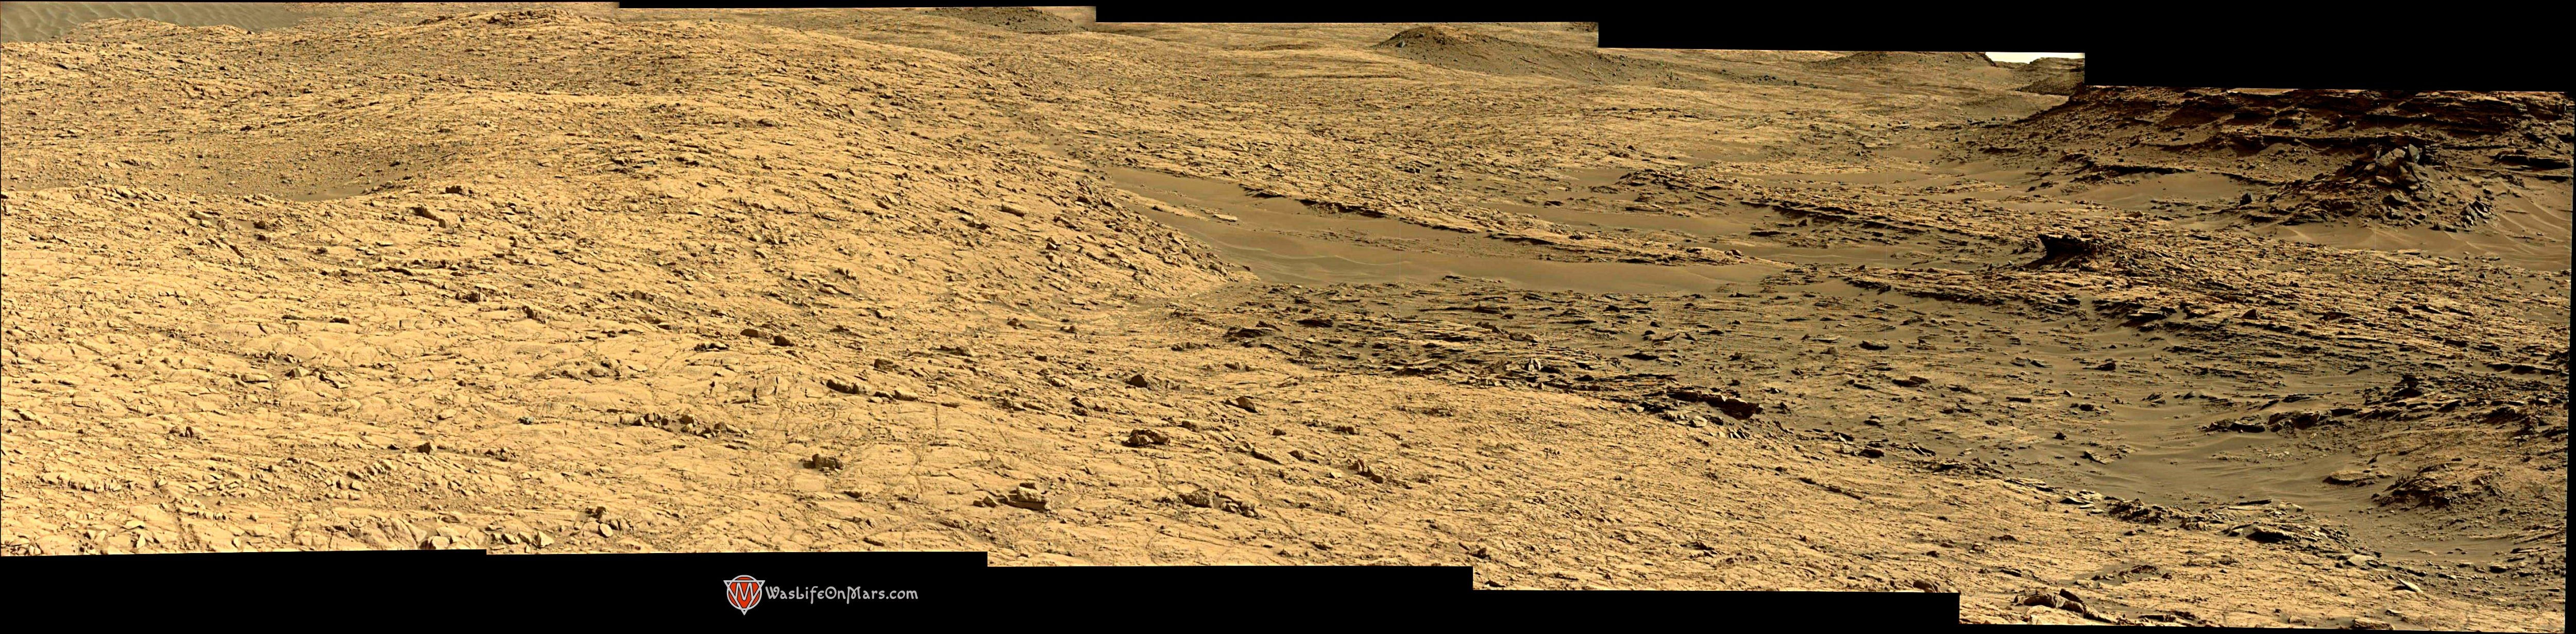 Curiosity Rover Composite View 1 of Mars Sol 1376 – Click to enlarge